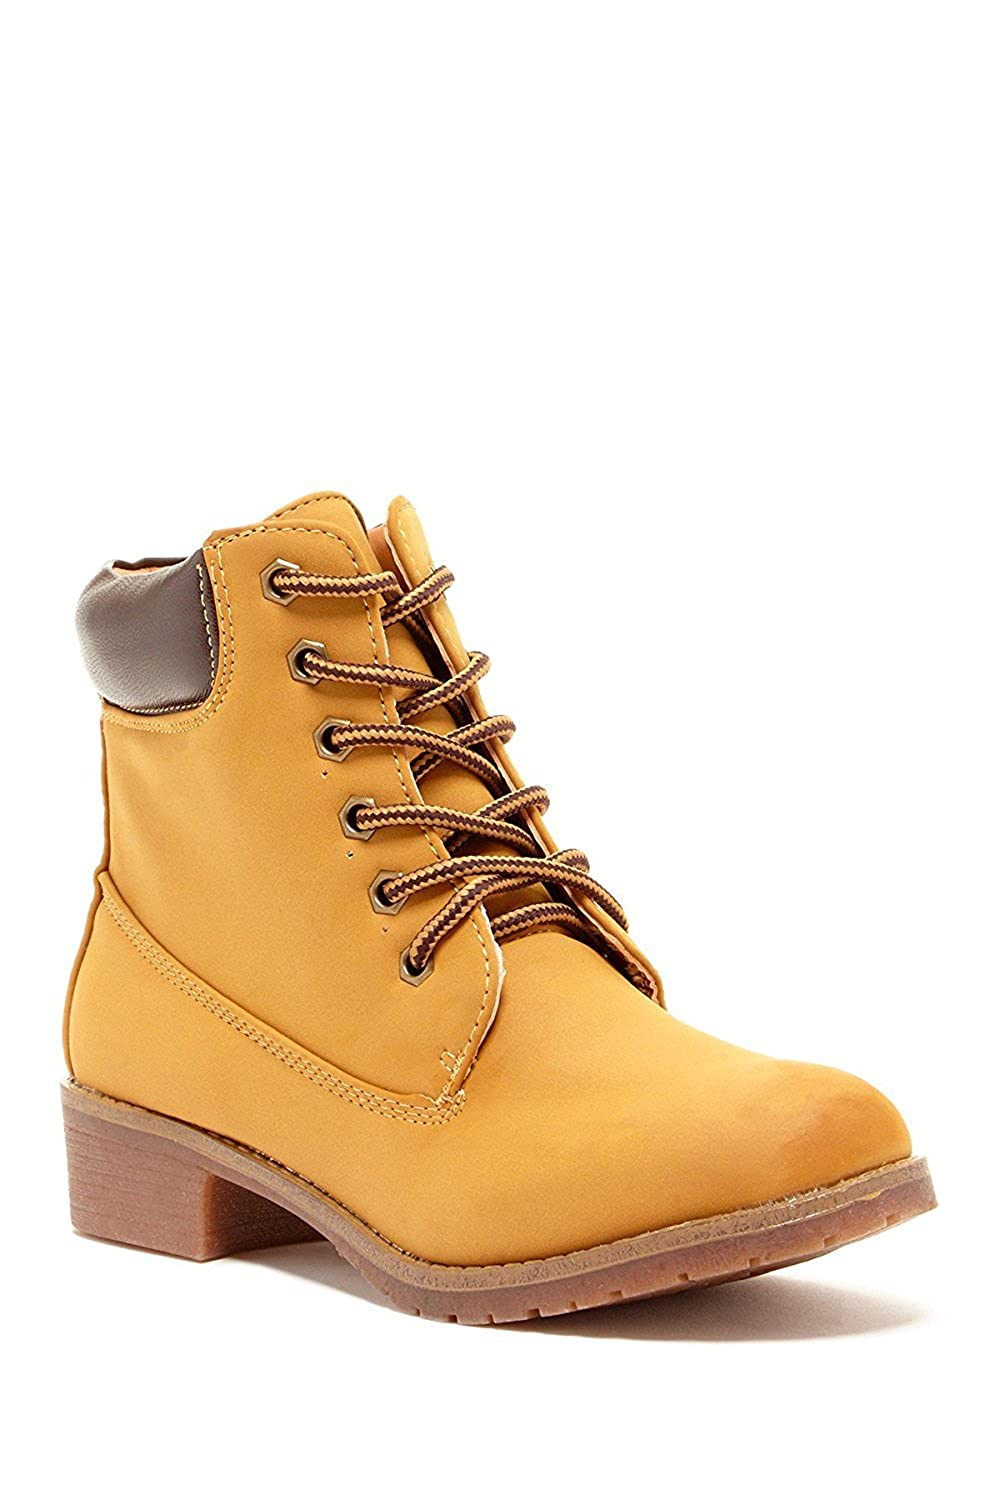 Women's Military Faux Suede Grip Sole Stacked Heel Boot Combat Lace Up Round Toe Bootie